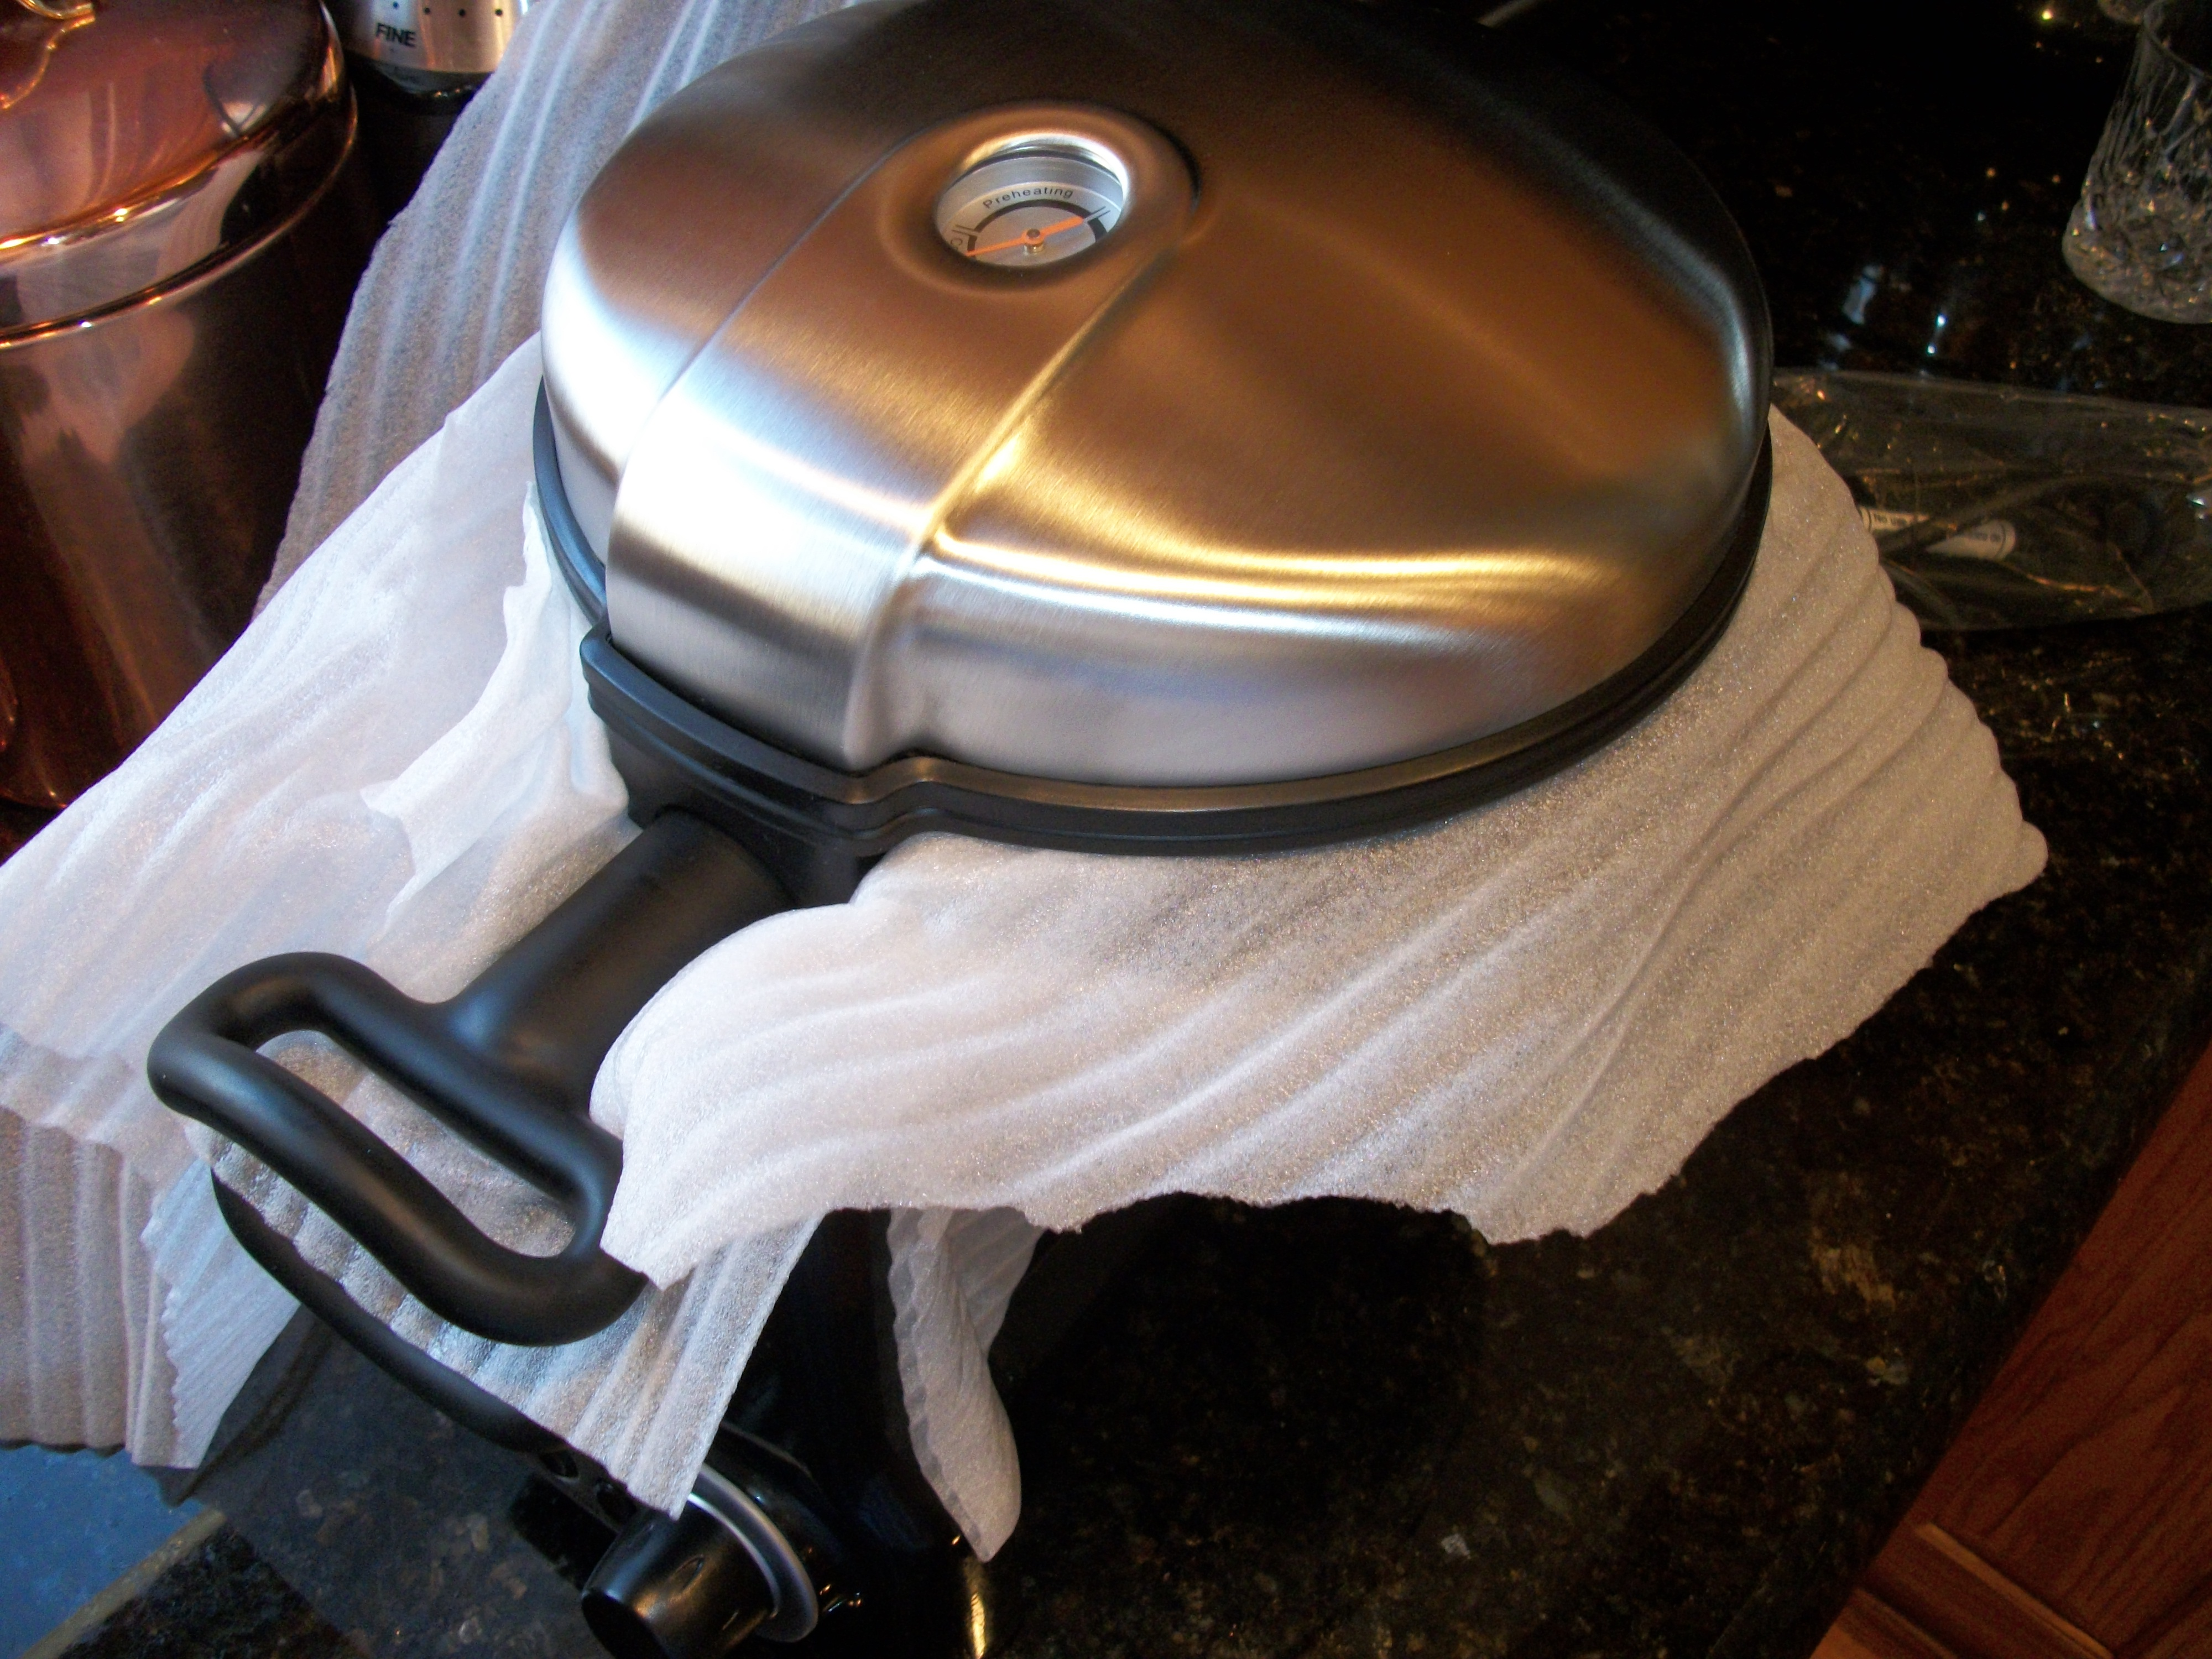 Unboxing the KitchenAid Pro Line Waffle Baker